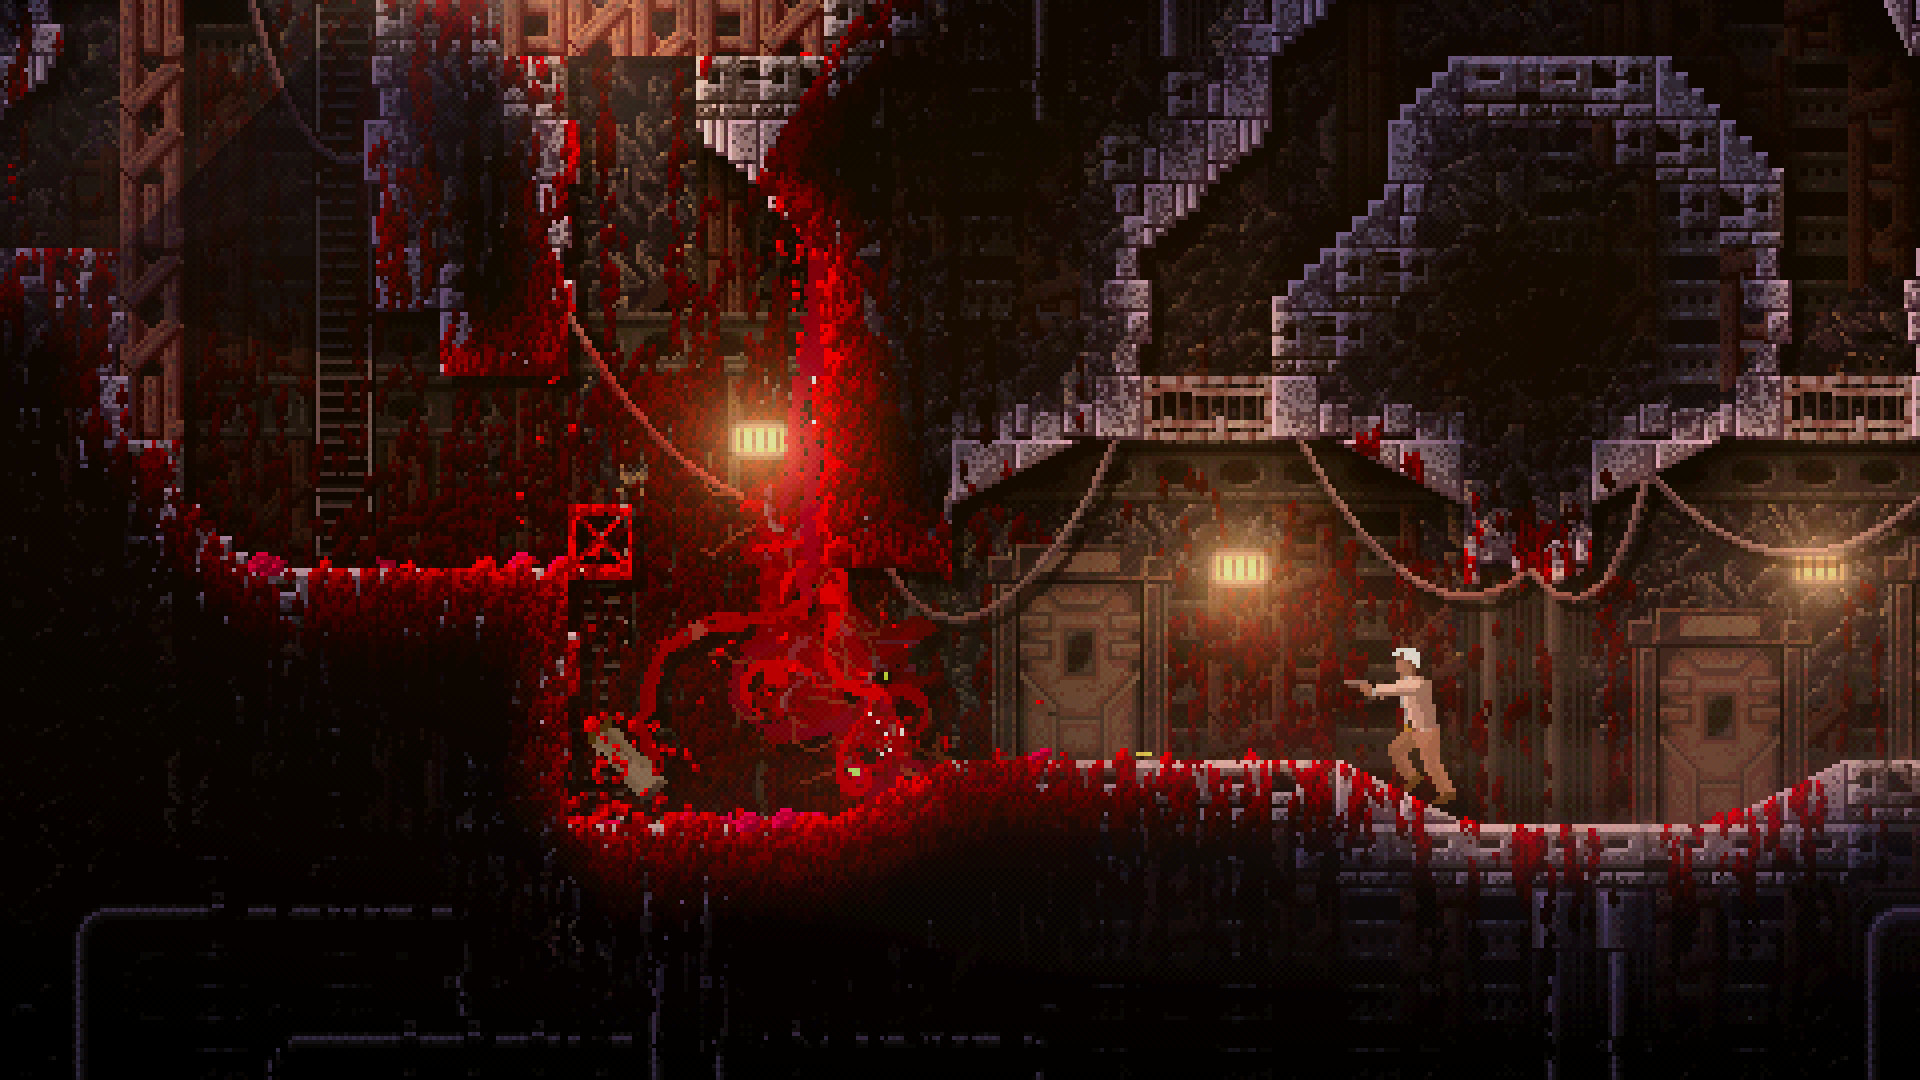 Carrion The Promising Reverse Horror Game Gets Free Demo On